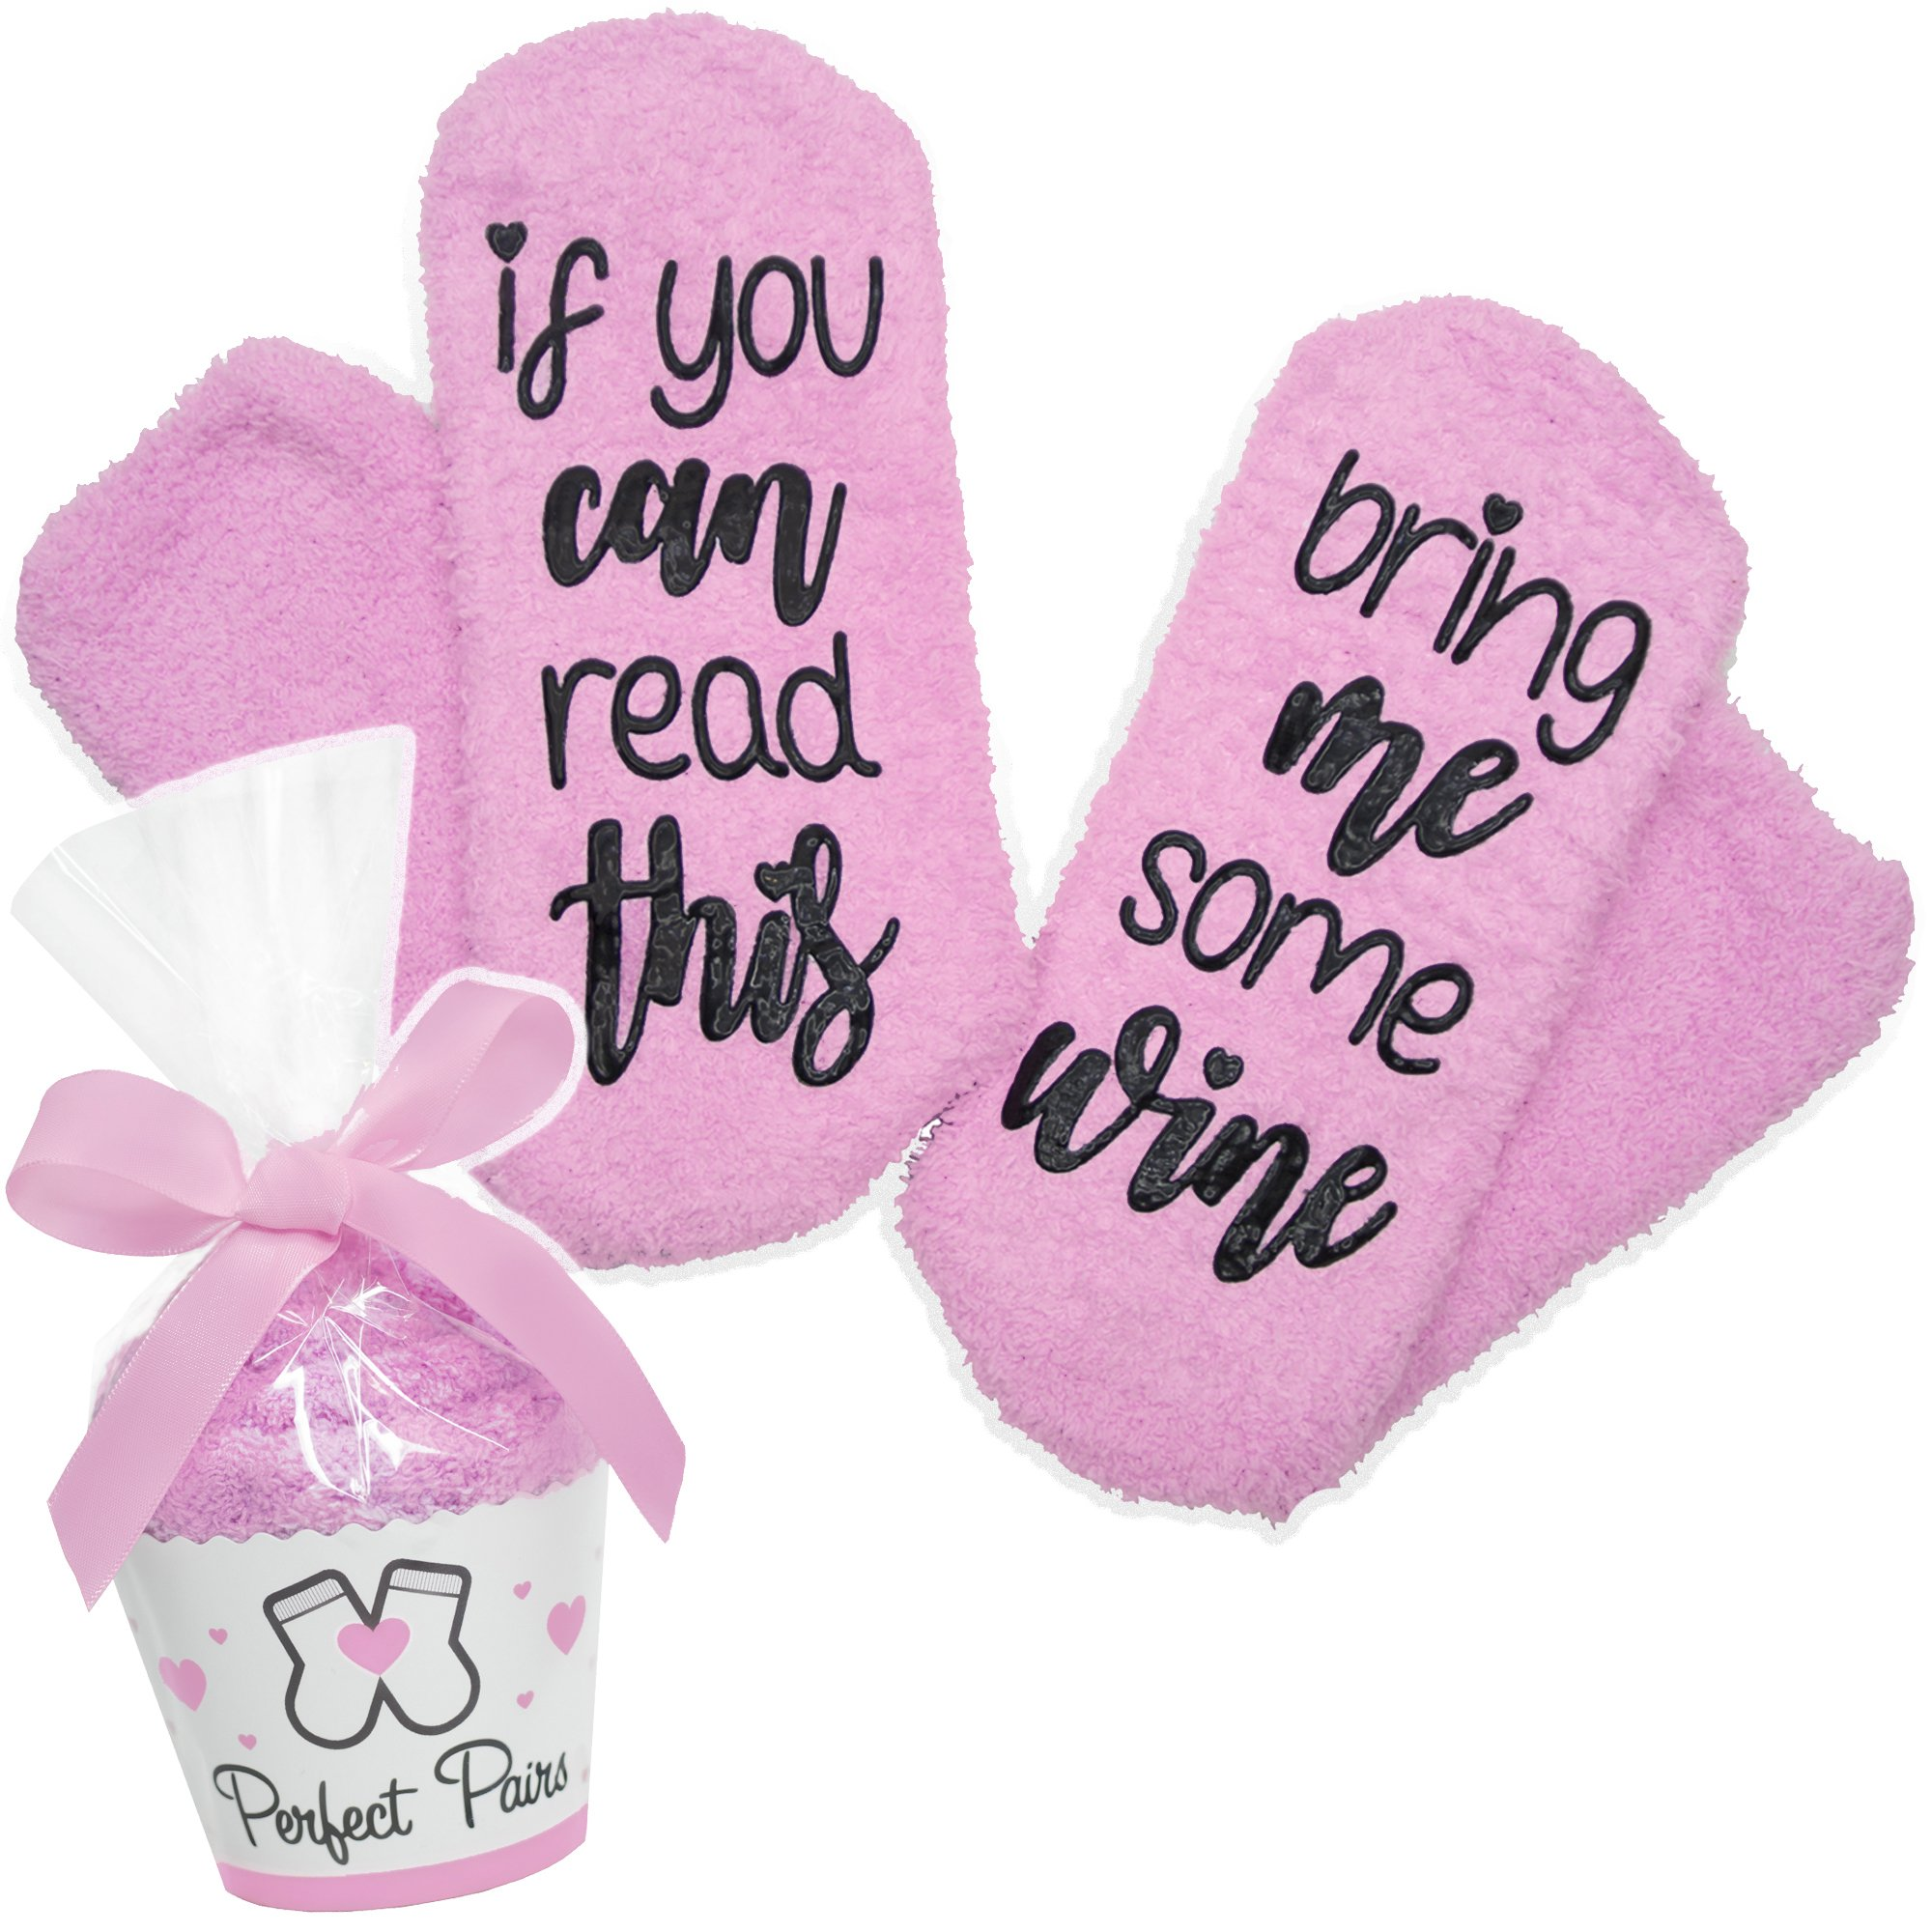 If You Can Read This Bring Me Some Wine Socks - Perfect Pairs - Comfortable Fuzzy Gift Idea For Mother, Wife, or Friend by Perfect Pairs Socks